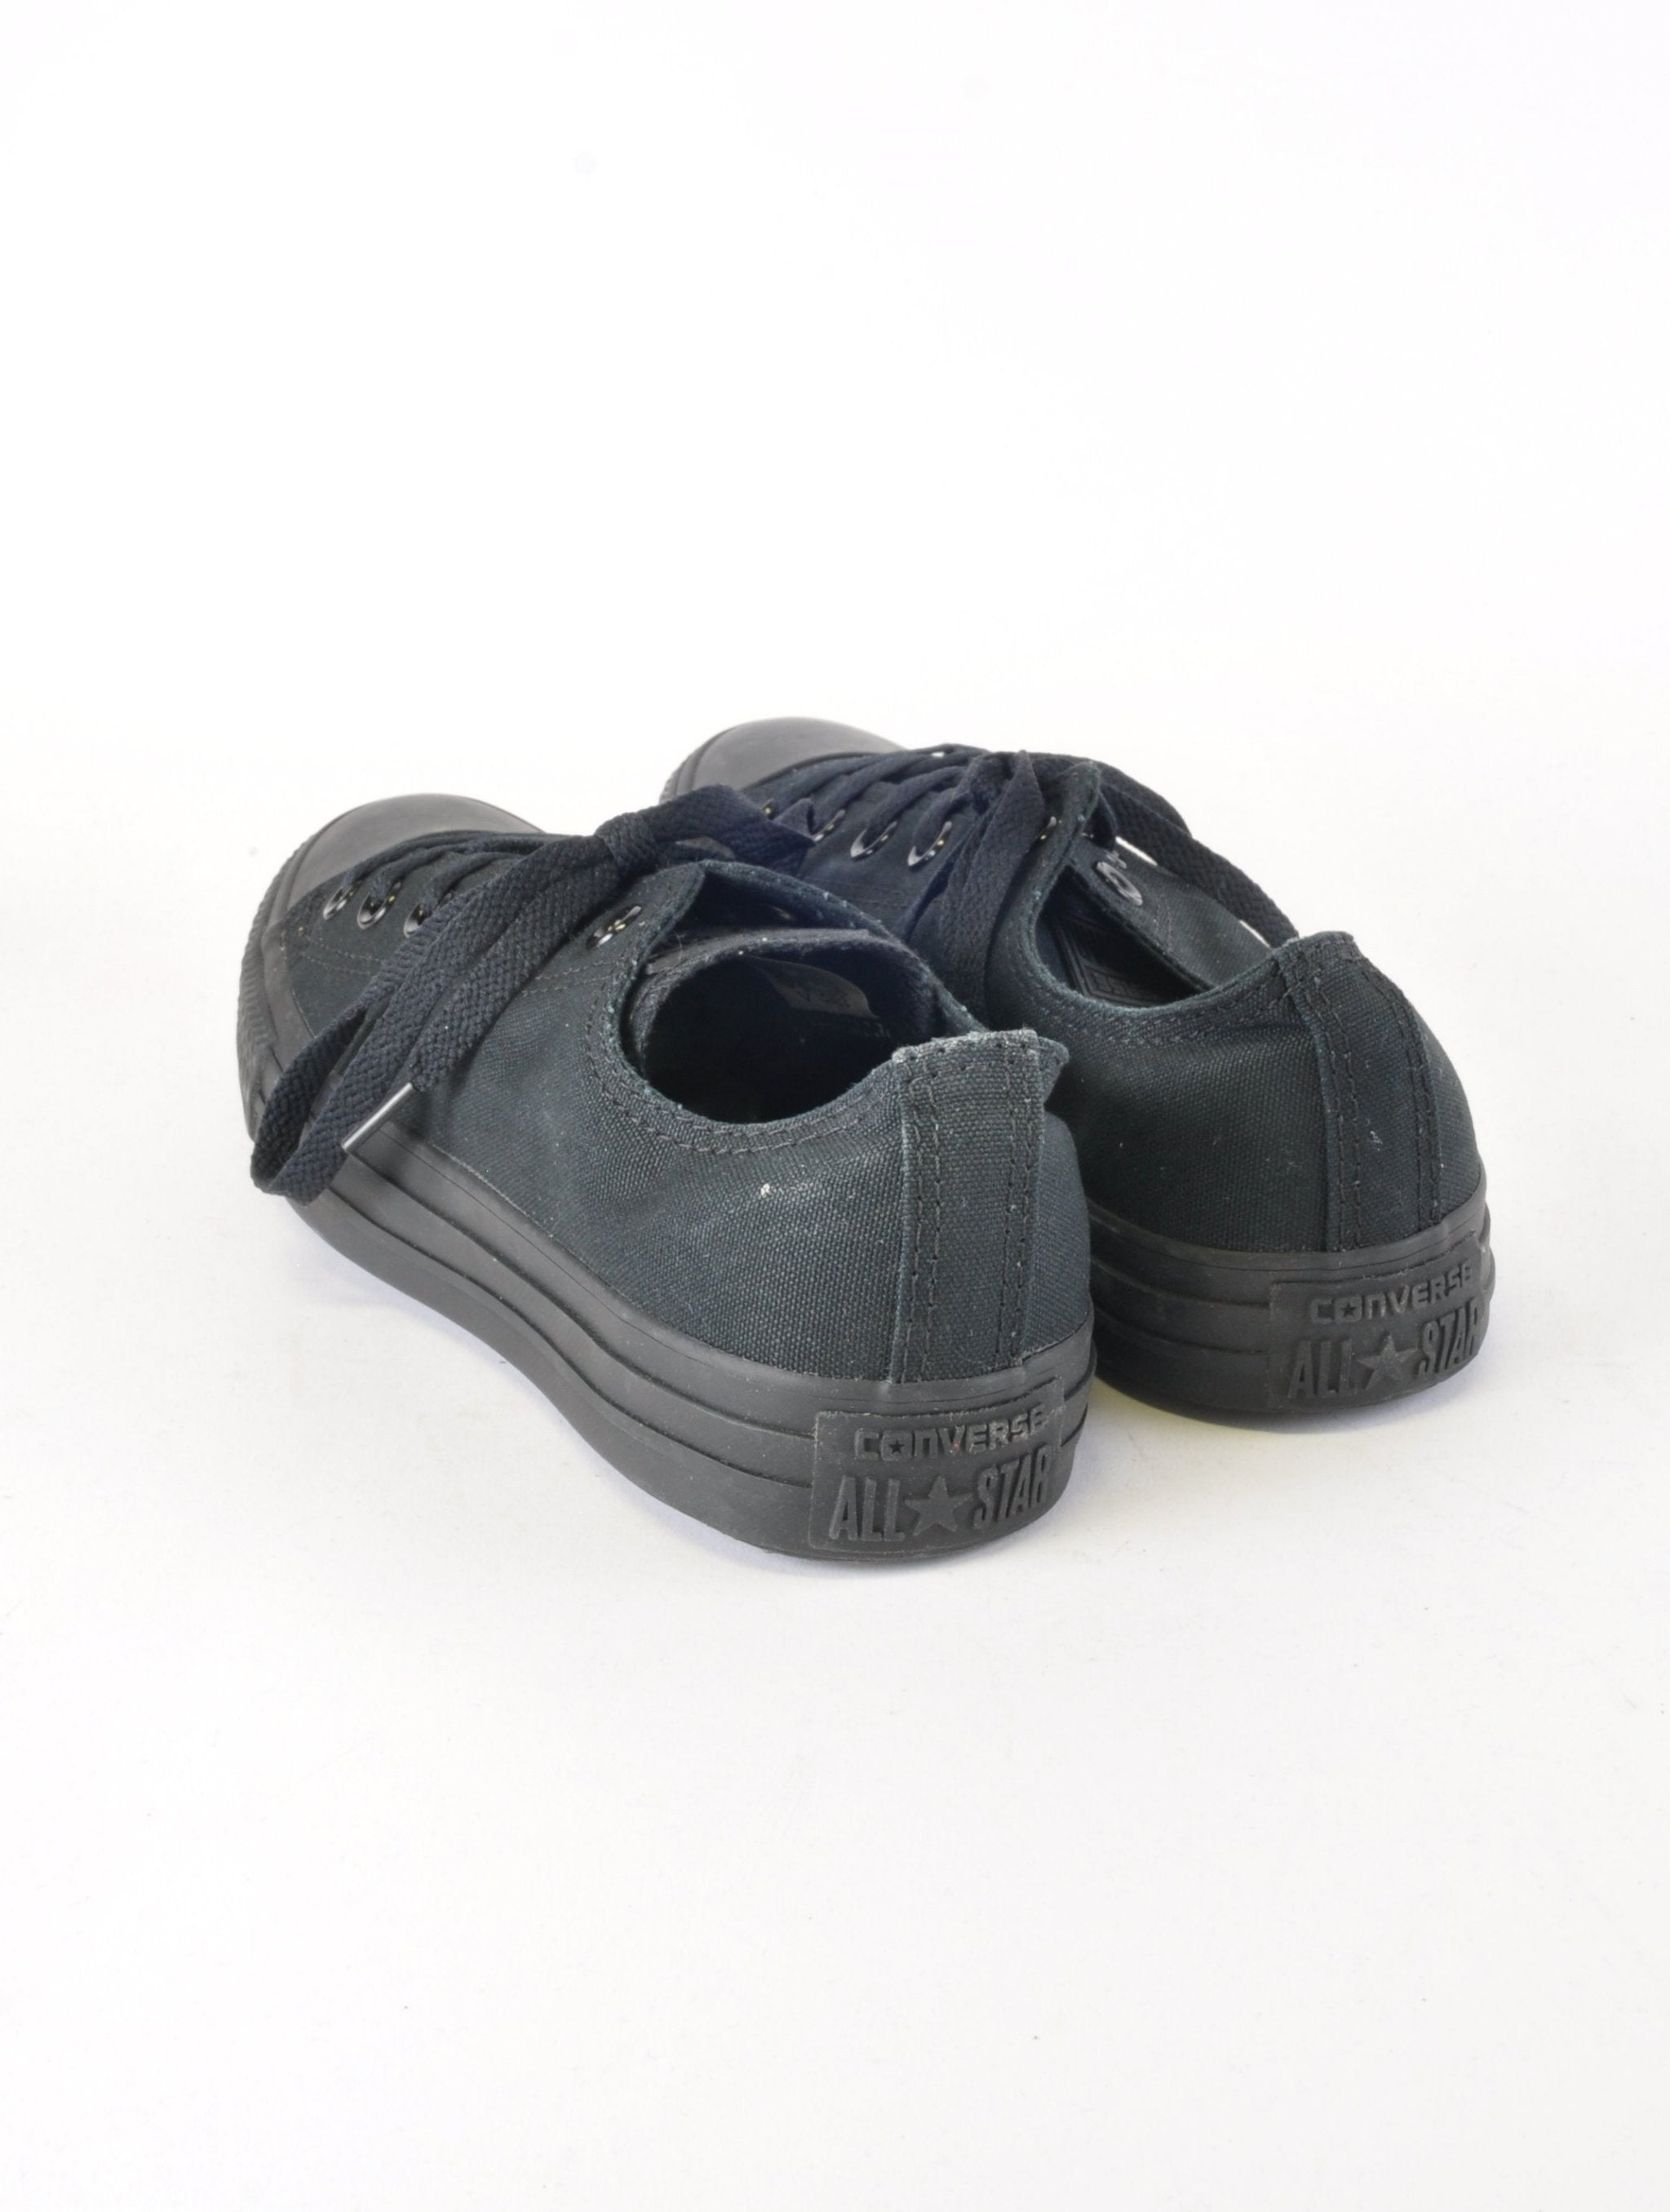 Black Classic Low Converse - New But Imperfect - Footwear - Beyond Retro